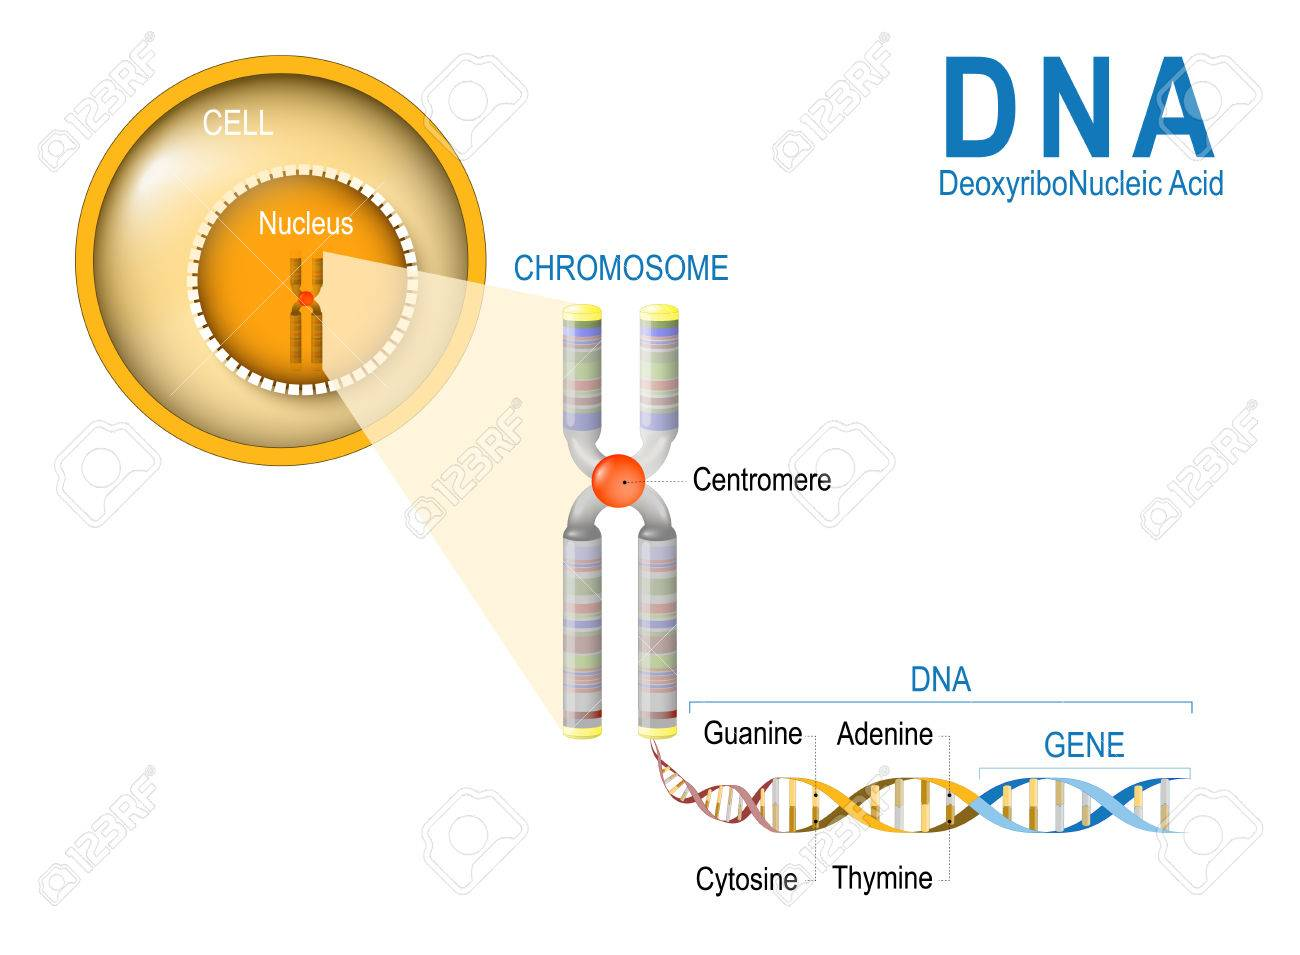 Cell chromosome dna and gene cell structure the dna molecule cell chromosome dna and gene cell structure the dna molecule is a ccuart Images